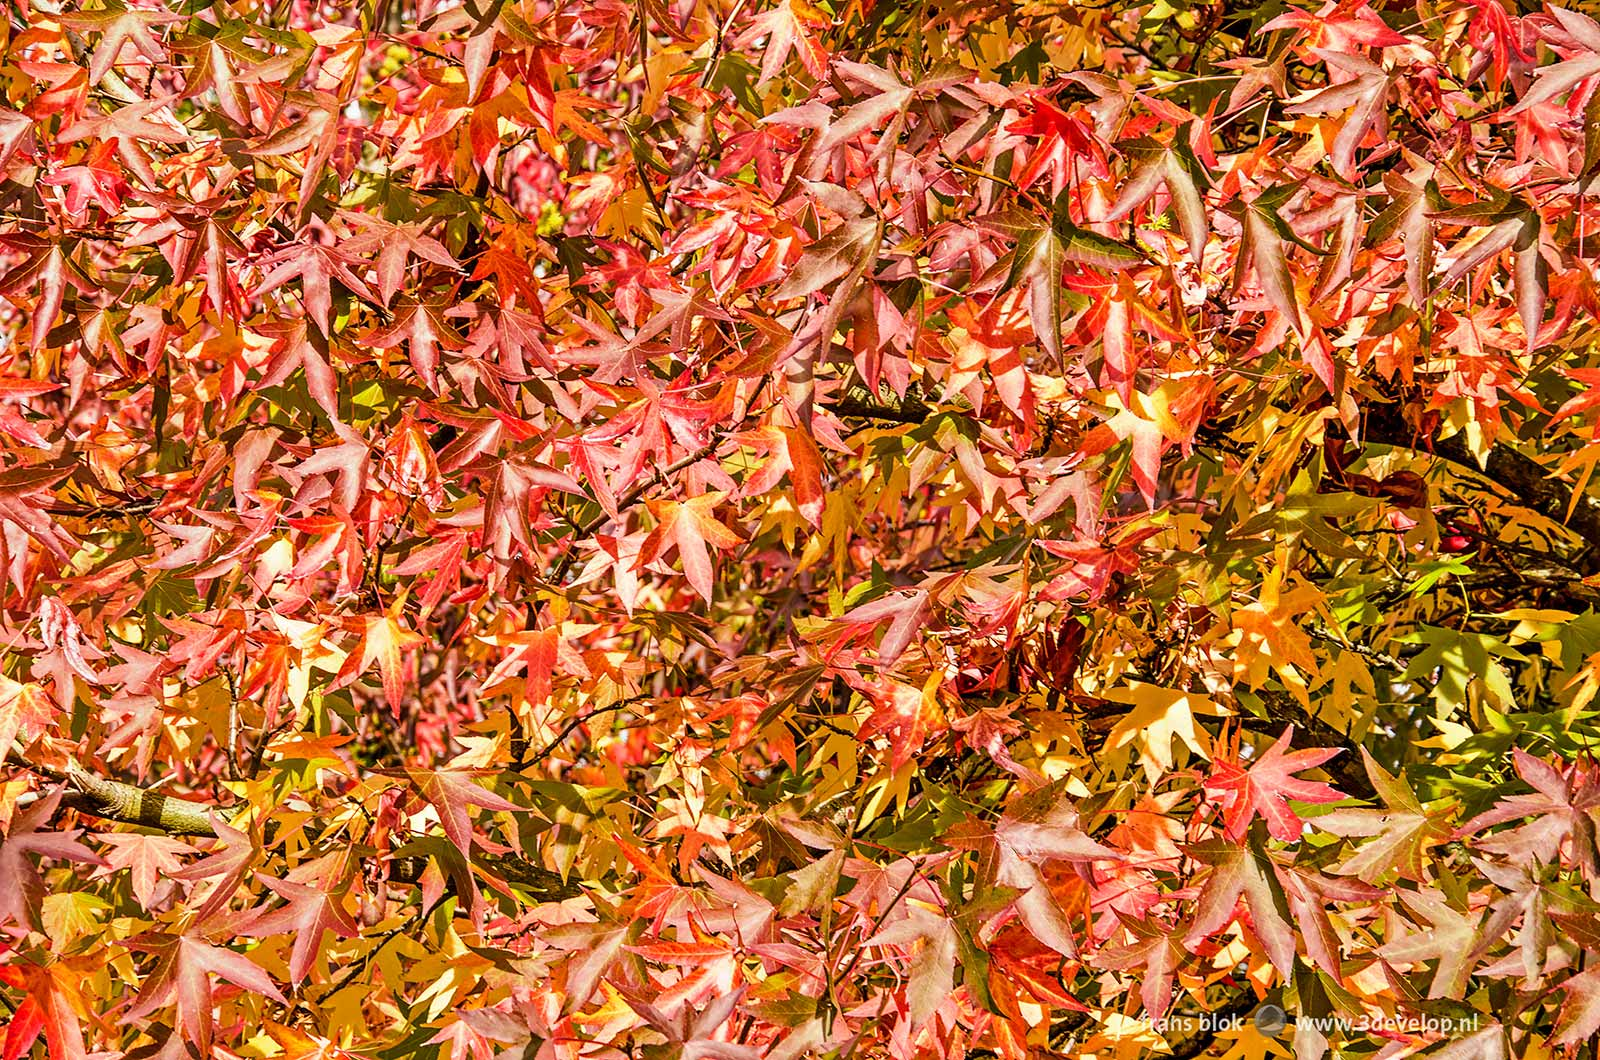 Almost abstract and multicolored image of the leaves of a sweet gum tree (liquidambar styraciflua) in autumn